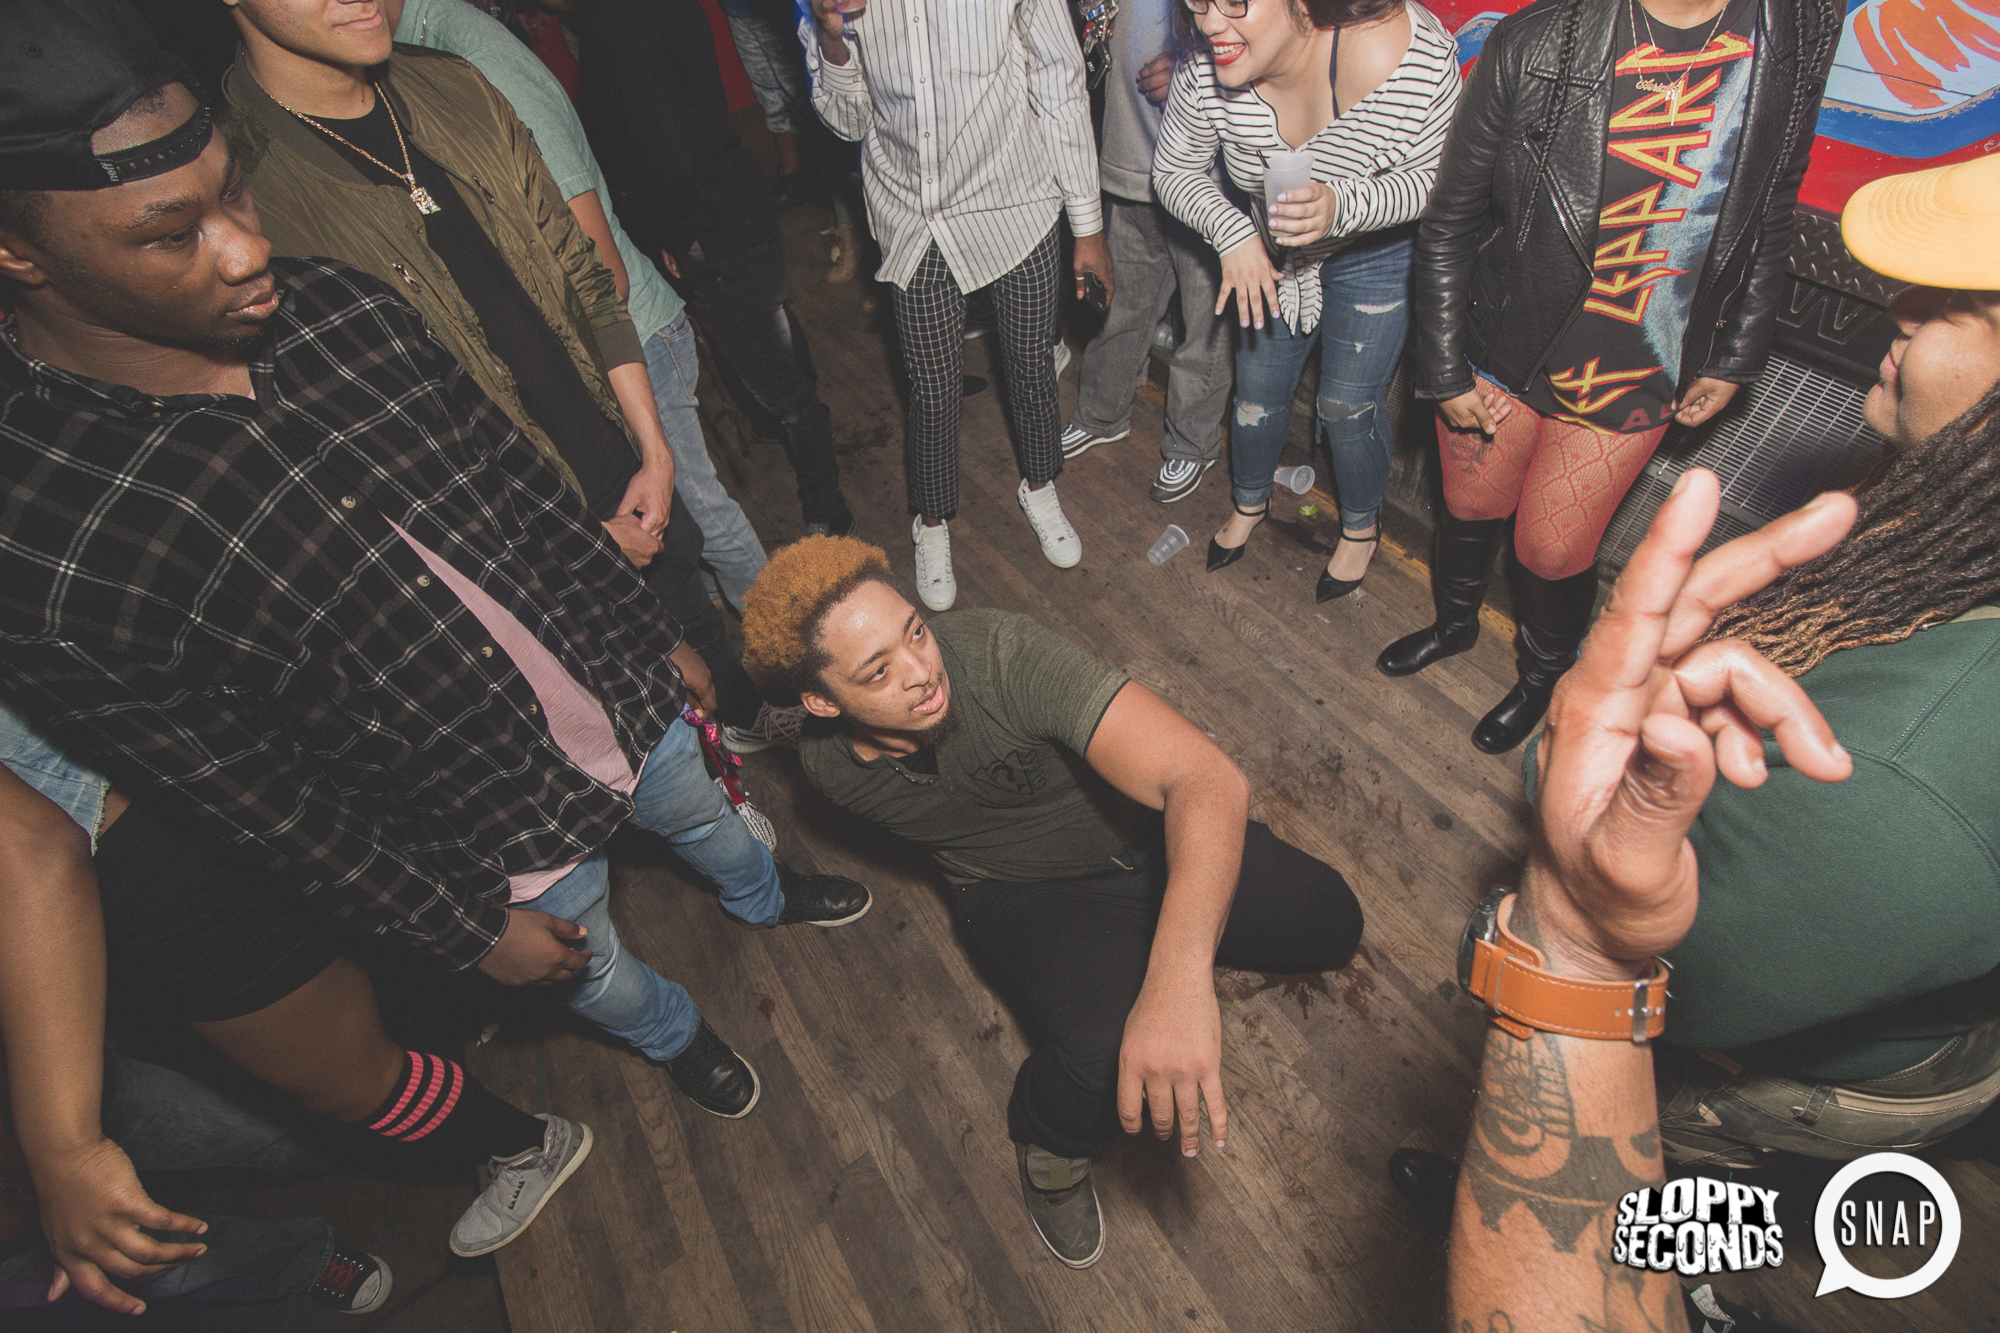 144Sloppy Seconds March2019 oh snap kid atlanta.JPG